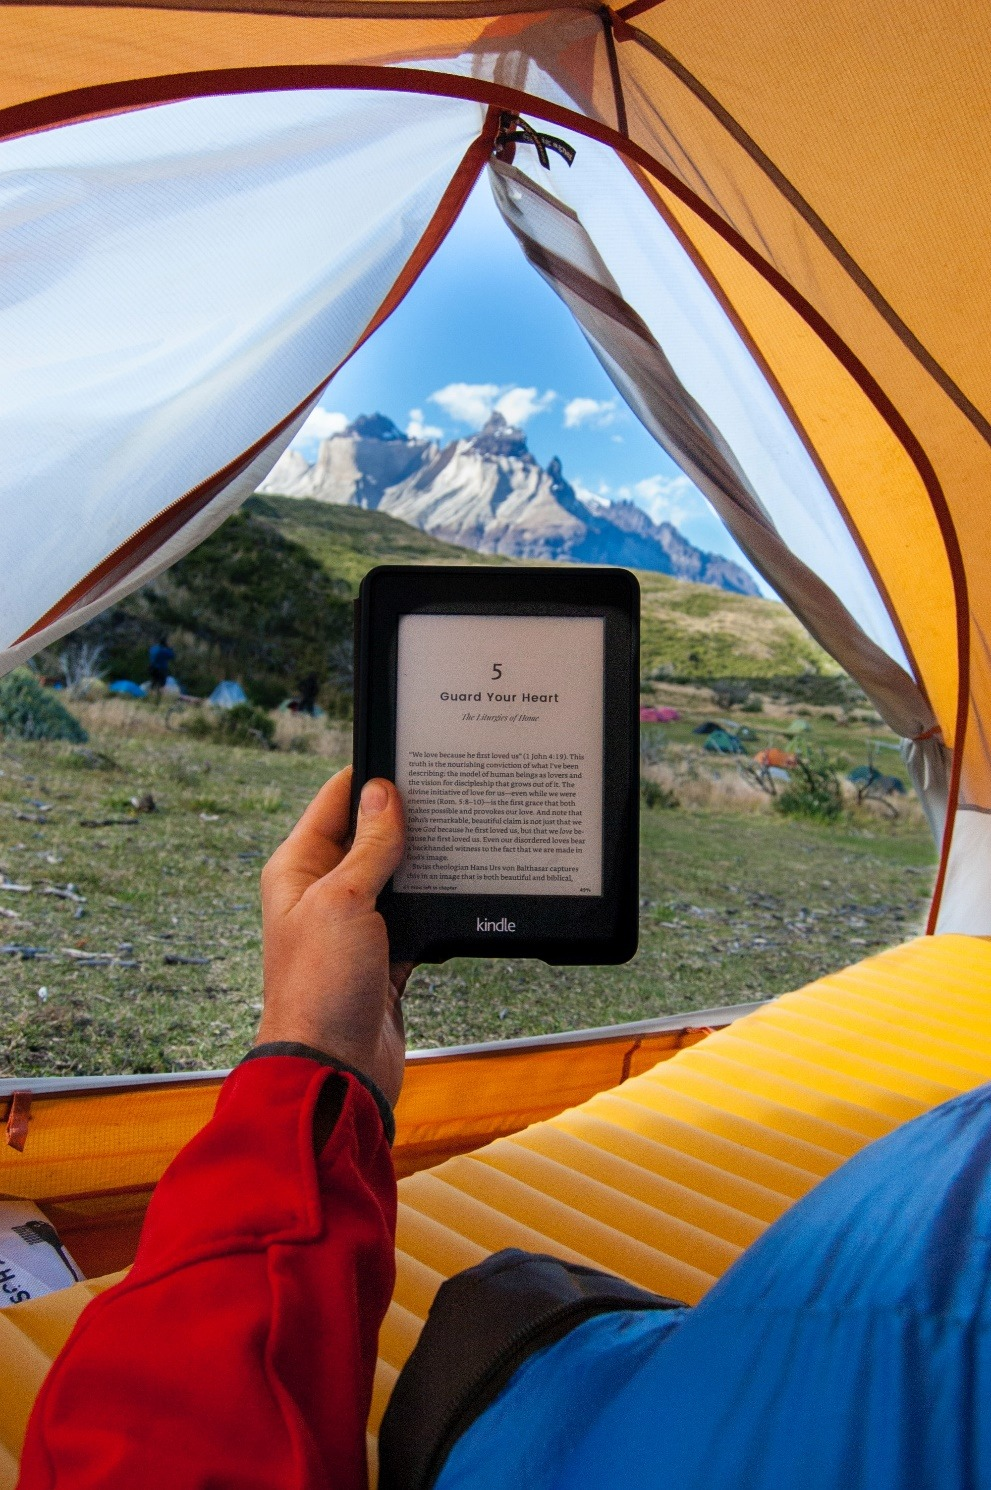 5 Best E-Readers to Buy - According to Tech Experts